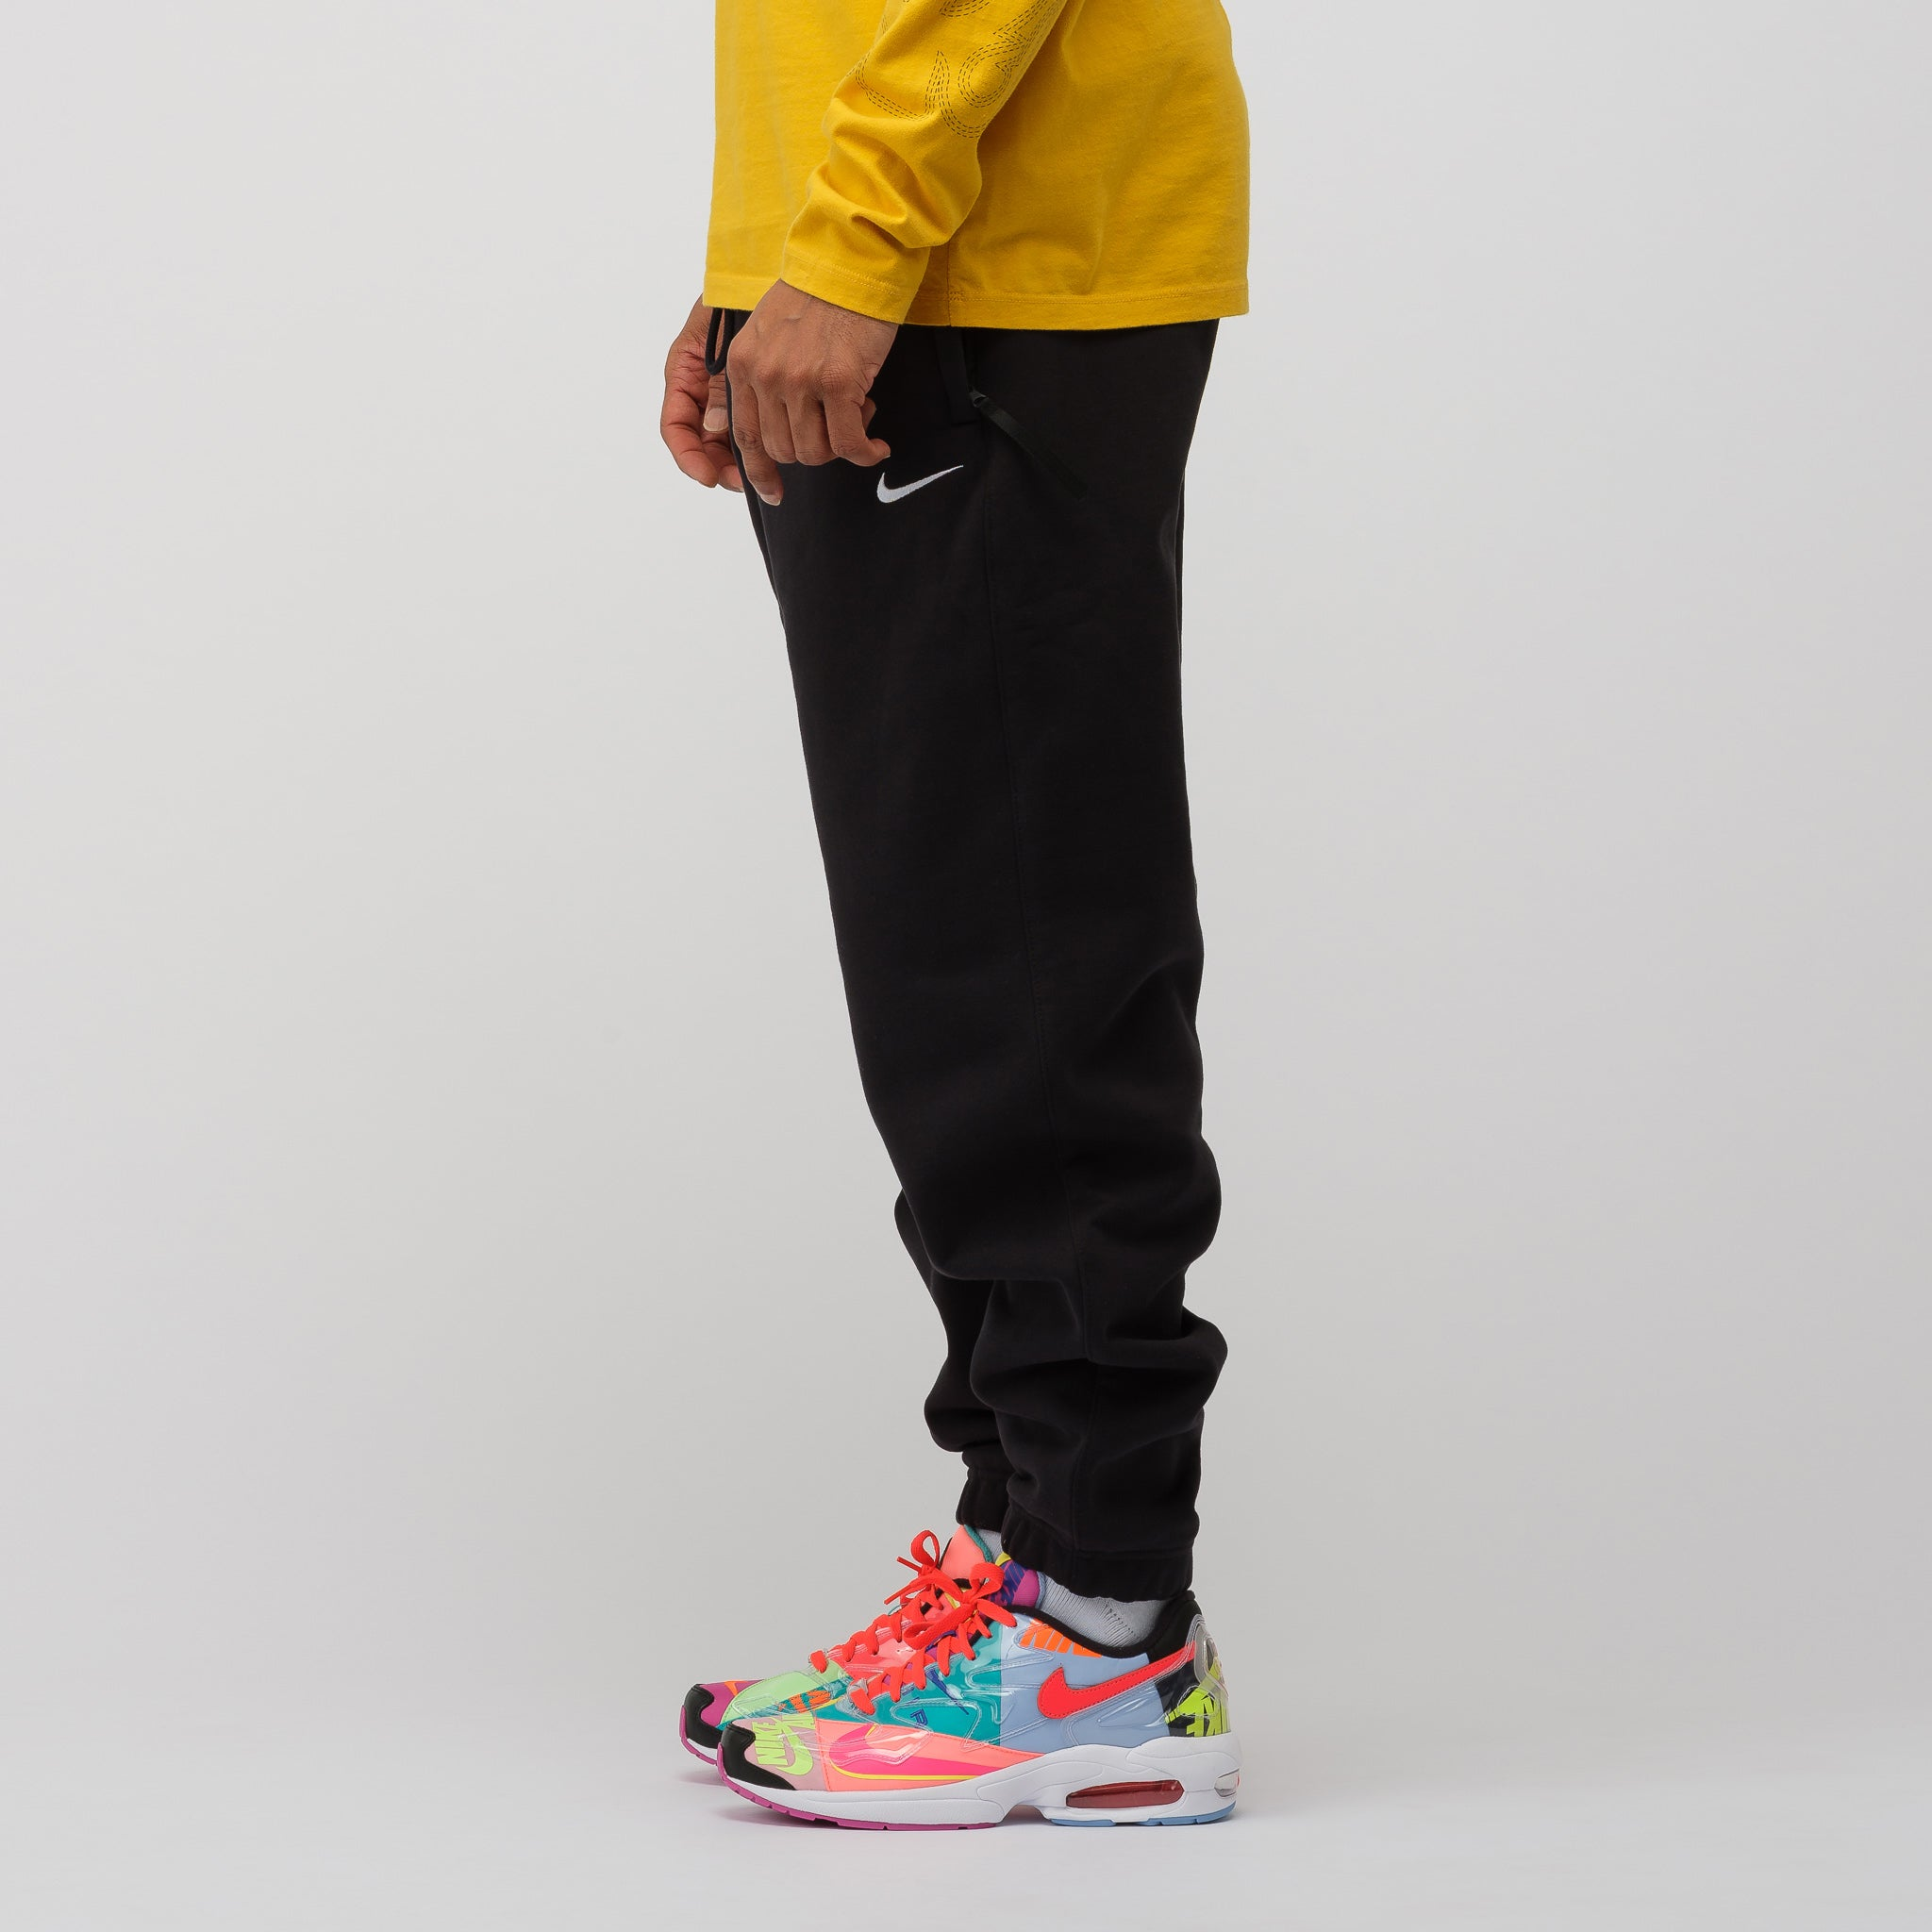 a2633c8b8e1a49 NikeLab Fleece Pants in Black